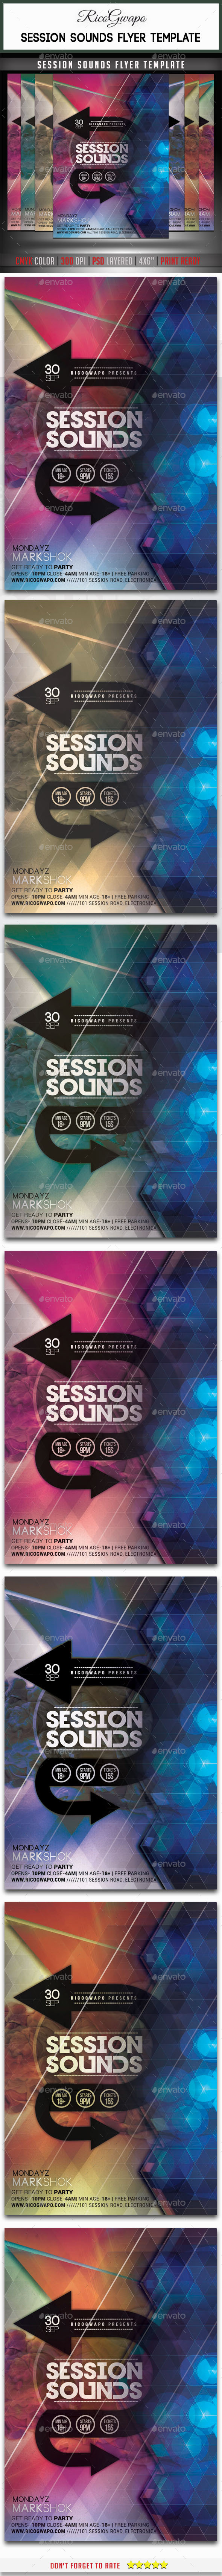 Session Sounds Flyer Template - Flyers Print Templates